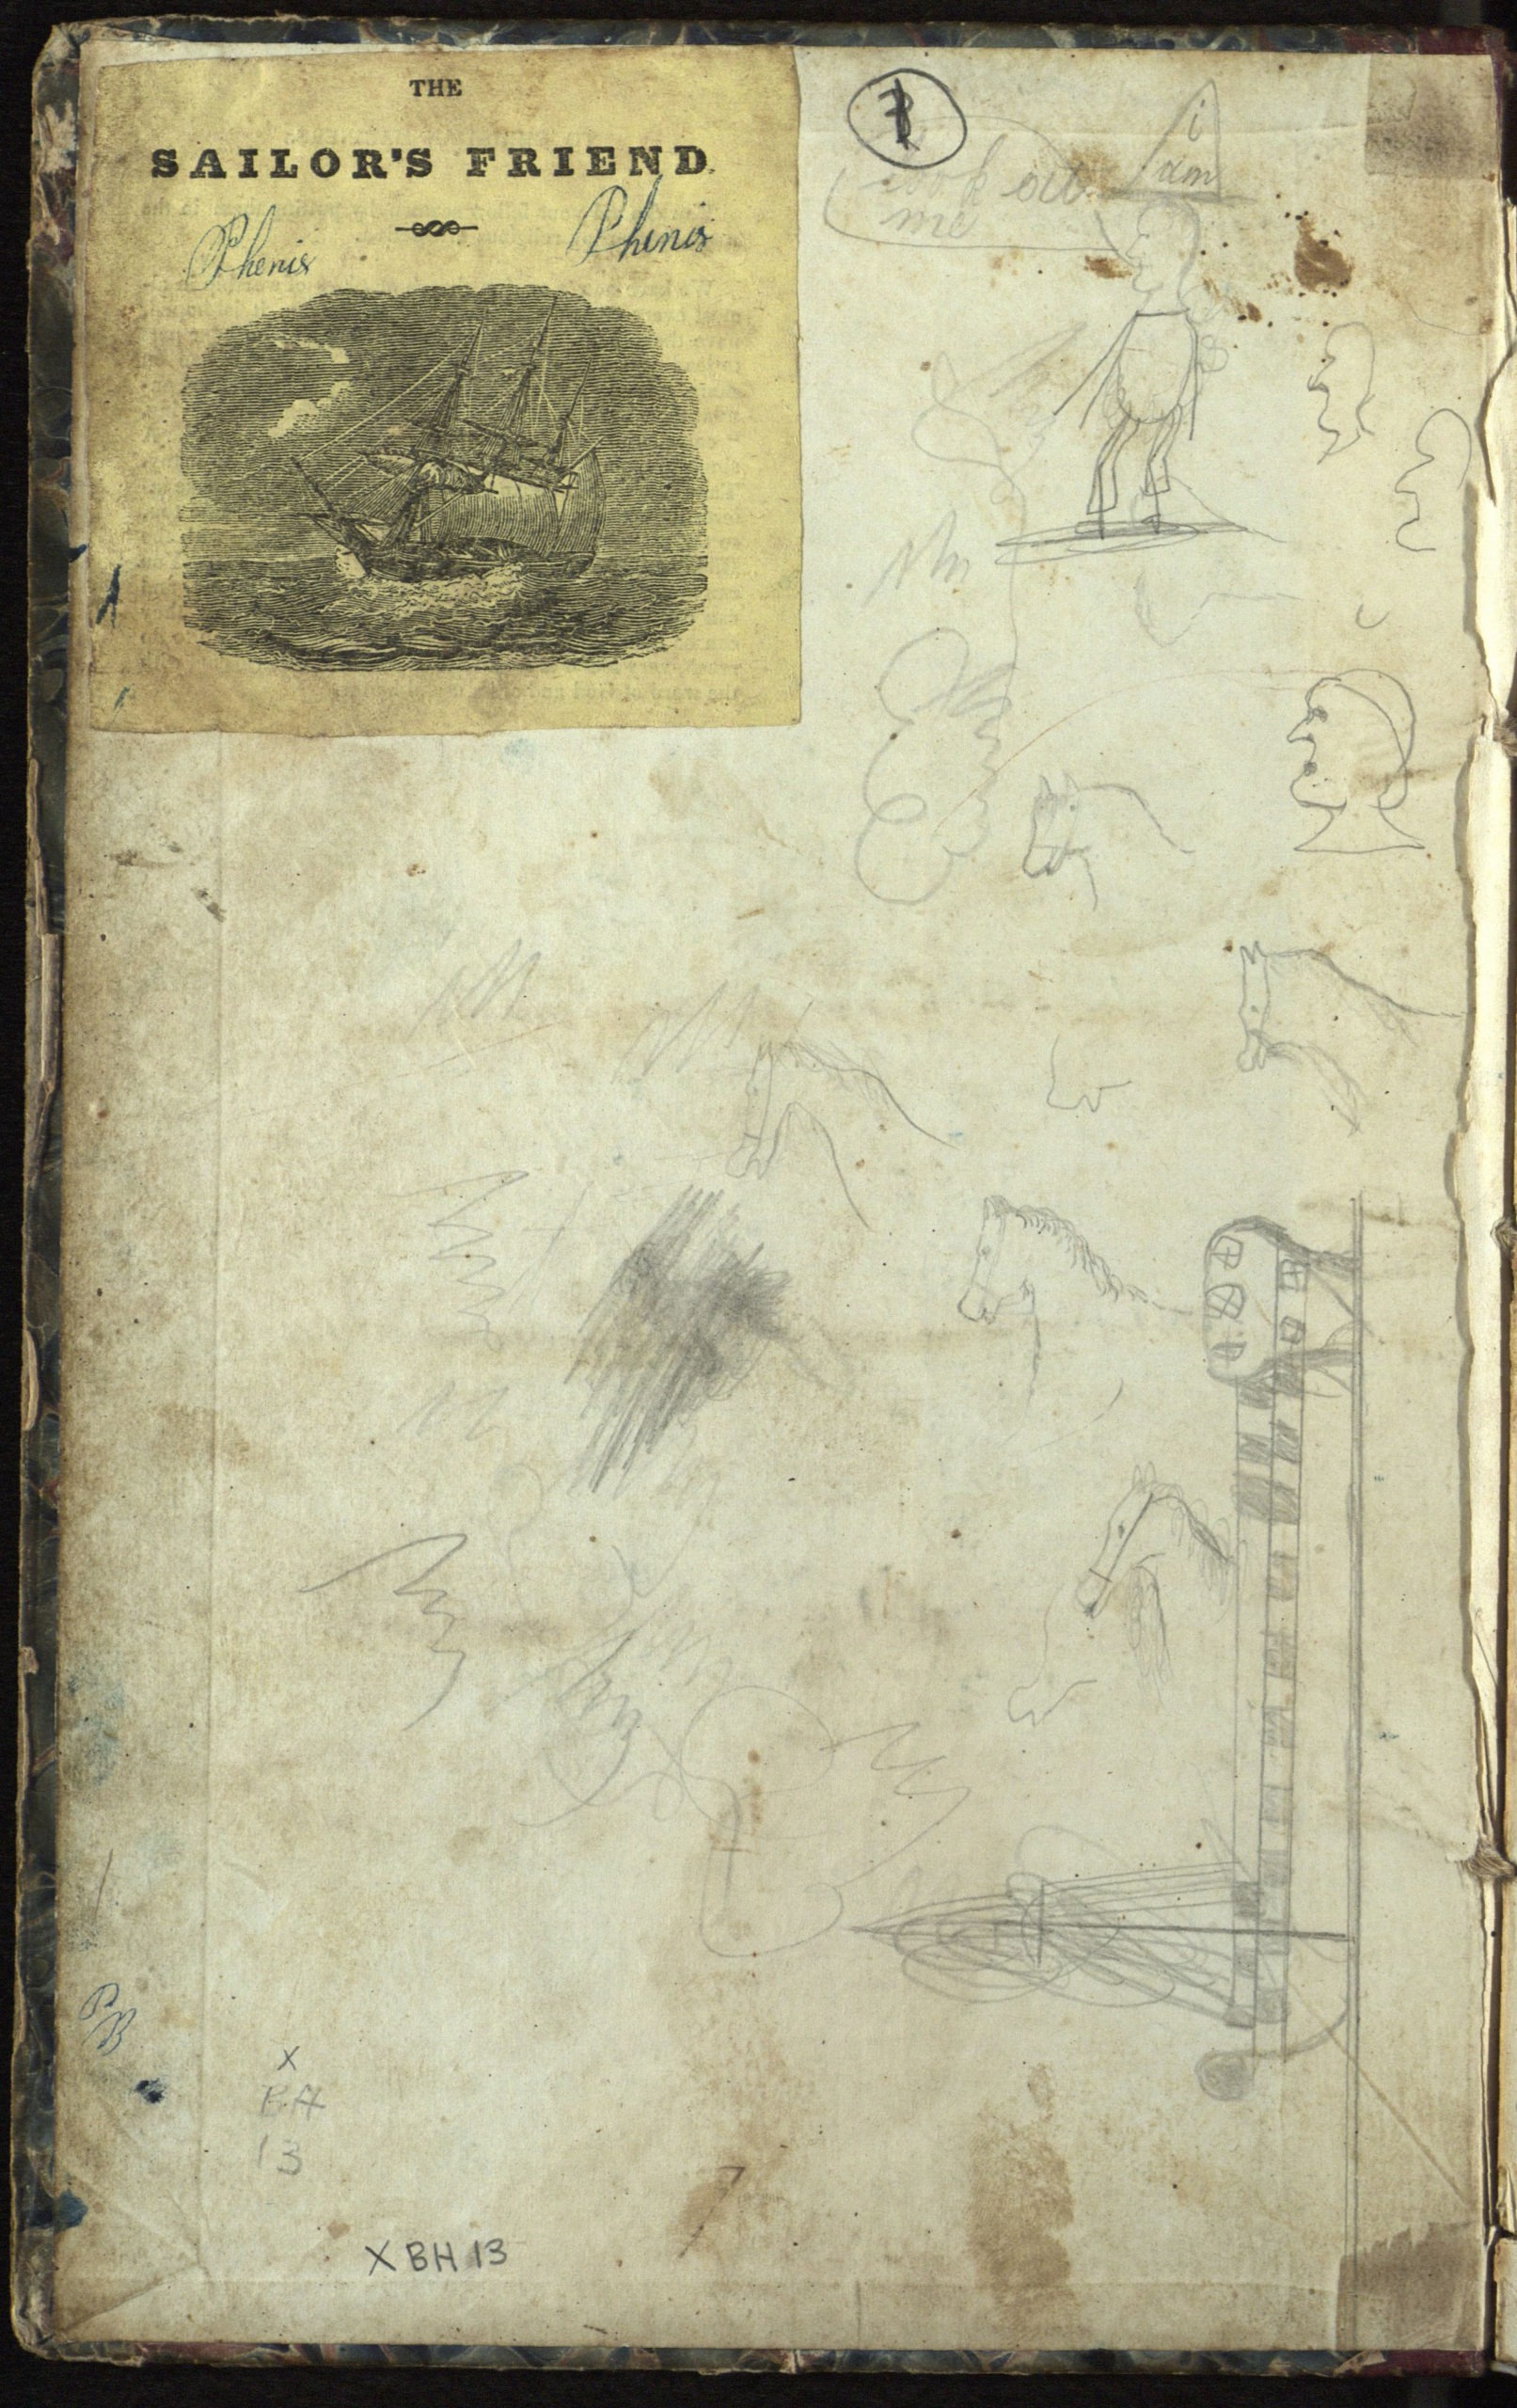 The cover of the  log of the whaling ship Phenix, on a voyage from Sag Harbor to the Northwest Coast, 10 October 1844 to 5 June 1847.  Journal abruptly ends, briefly picked up again for a few days in March 1847. The rest of the log contains  poems and sketches of buildings a schoolhouse in East Hampton  and churches in East Hampton and Sag Harbor.   COURTESY  EAST HAMPTON LIBRARY, LONG ISLAND COLLECTION